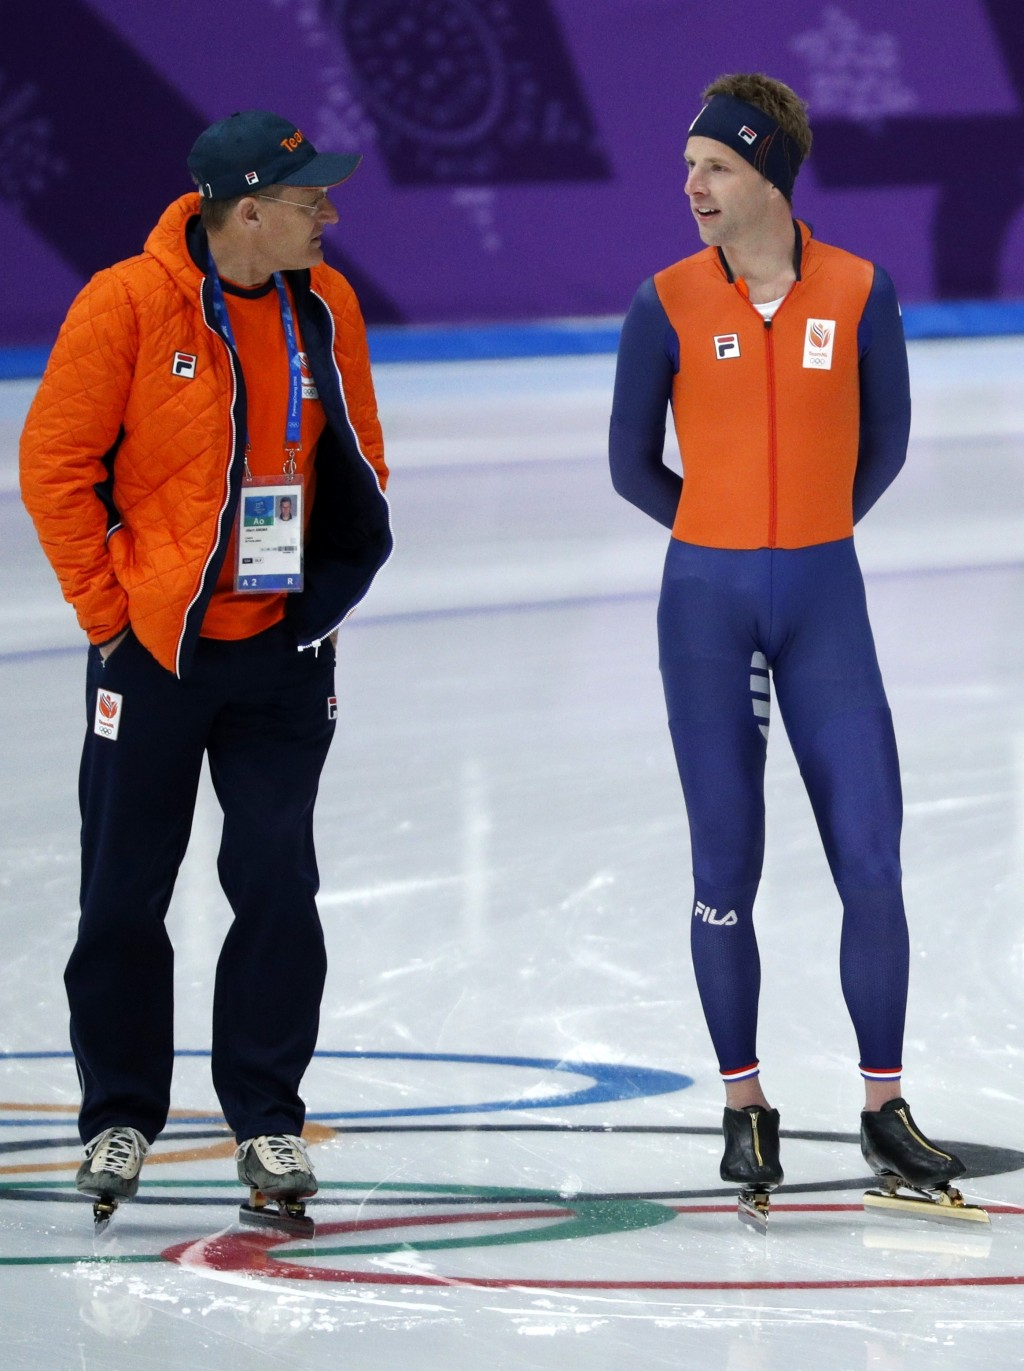 FILE - In this Feb. 10, 2018 file photo Bob de Vries, right, of the Netherlands talks to coach Jillert Anema, left, of the Netherlands during the offi